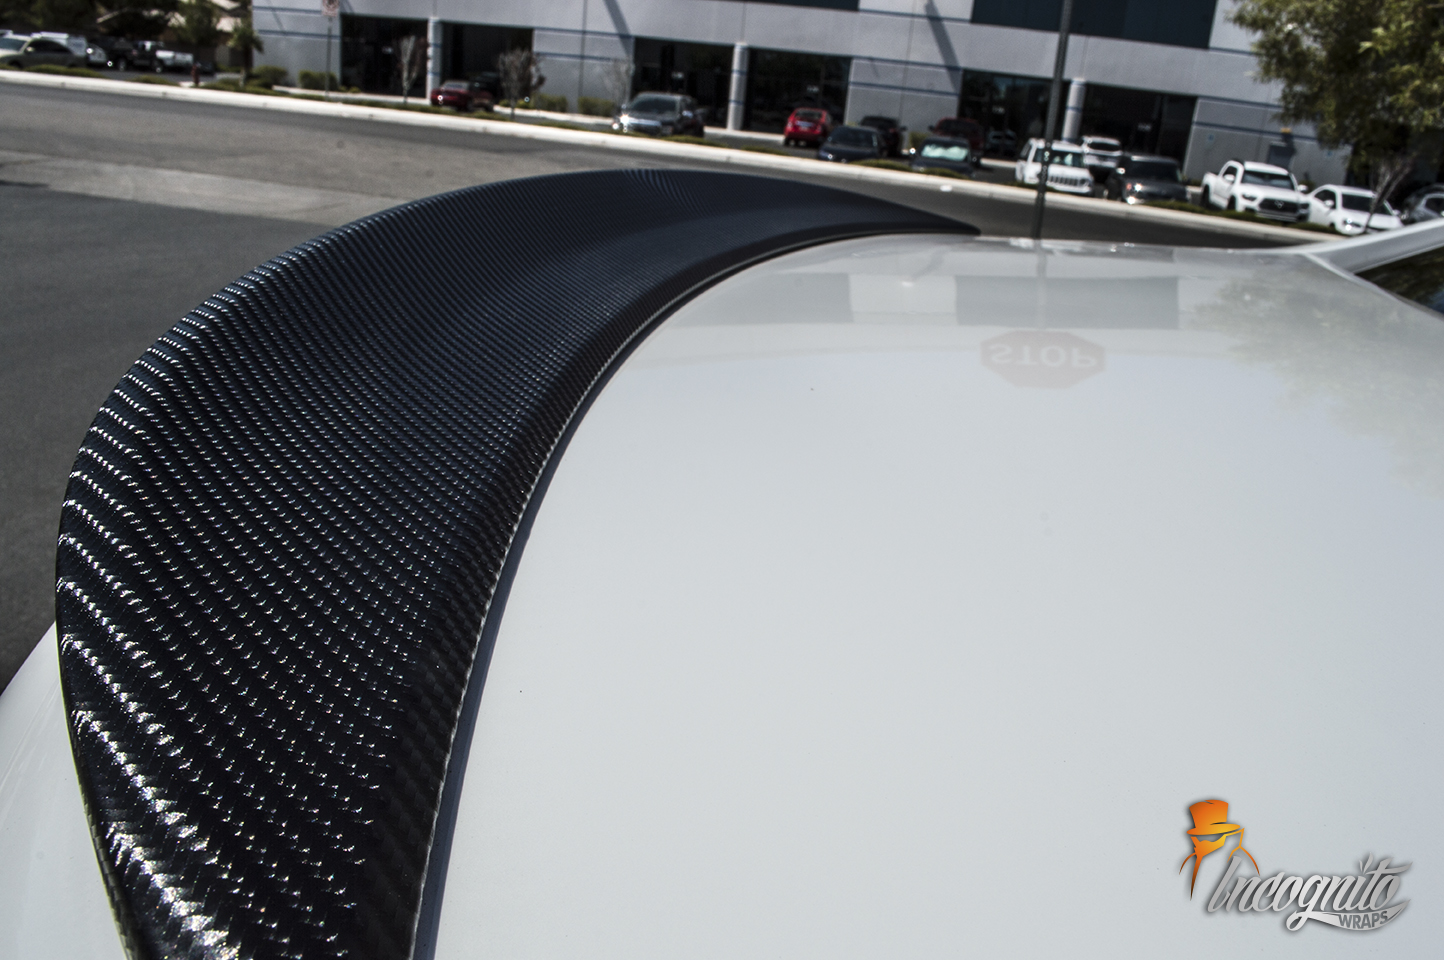 Chevy SS Carbon Fiber Roof and Spoiler